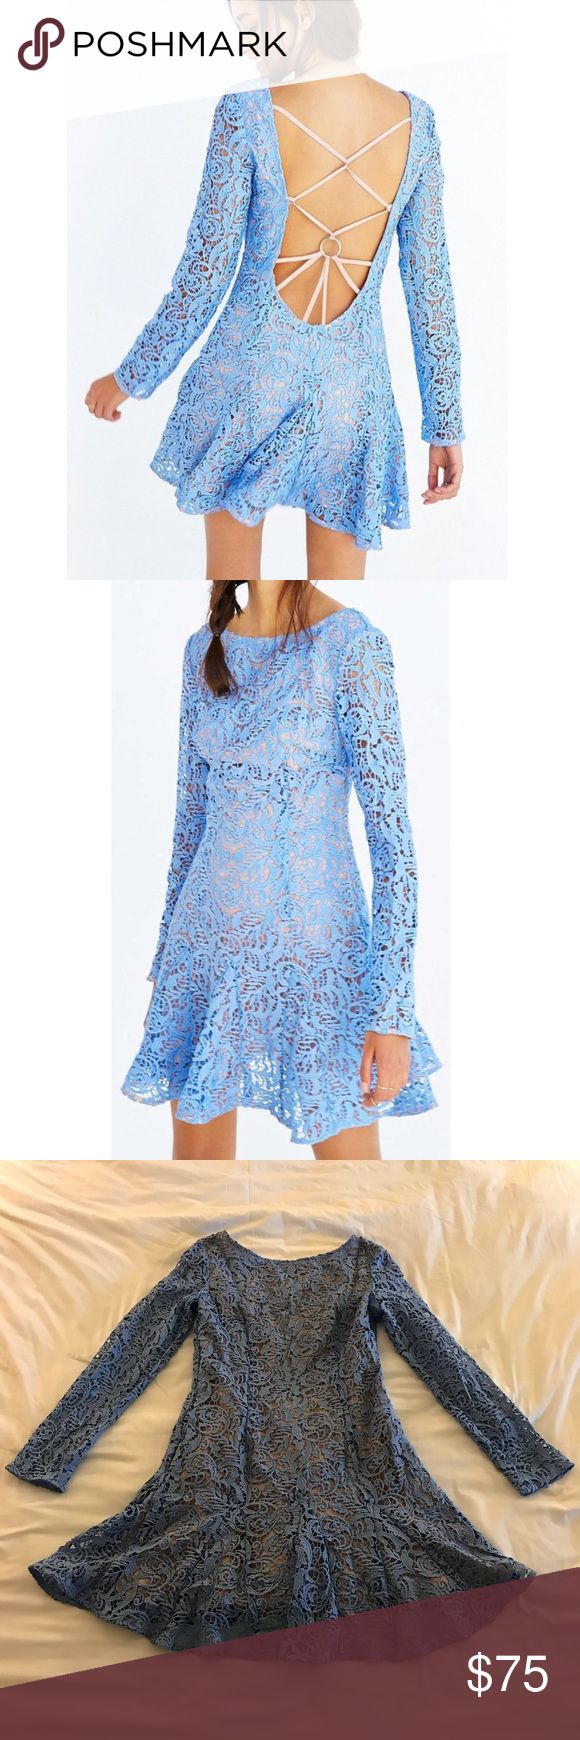 """NWT The Jersey Diaries Blue Samba Dress Size Large NWT The Jersey Diaries Blue Samba Dress Size Large. Dress is new with designer tag. Length is approx 35.5"""" shoulder to end of lace hem. Waist is approx 16"""" across. Adorable lace overlay dress with open back. Dress body is fully lined, sleeves are not lined. Blue is bright like stick photos, photos pull slightly darker...will update when I get to better light. :) The Jetset Diaries Dresses Mini"""